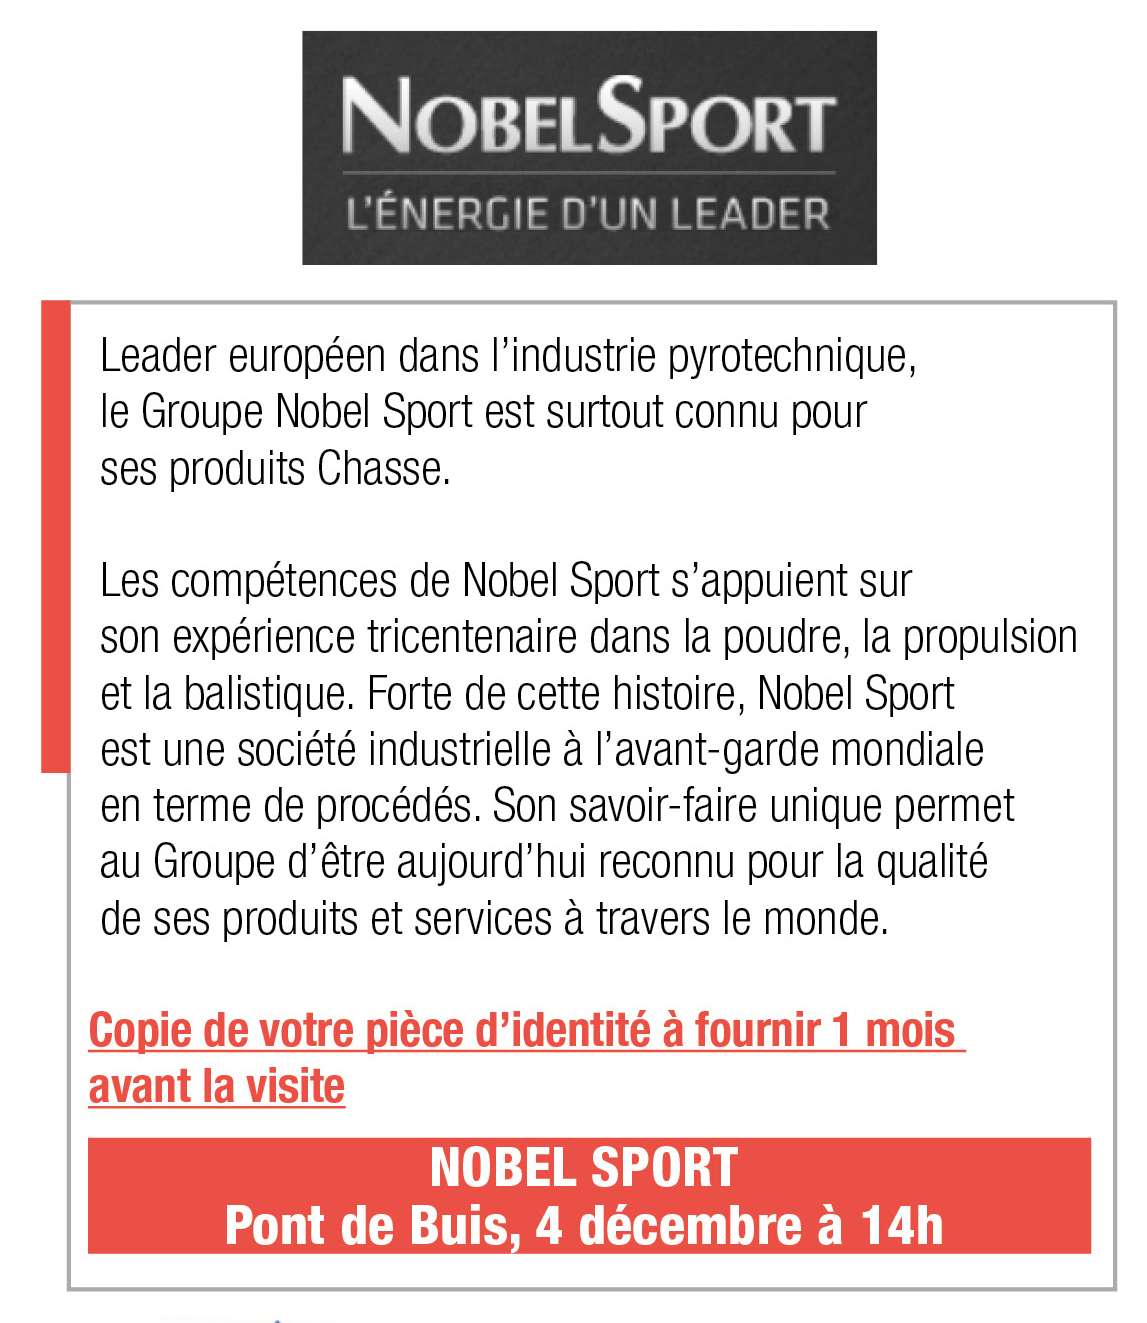 Inscription Nobel Sport, 4 décembre, 14h, Pont de Buis